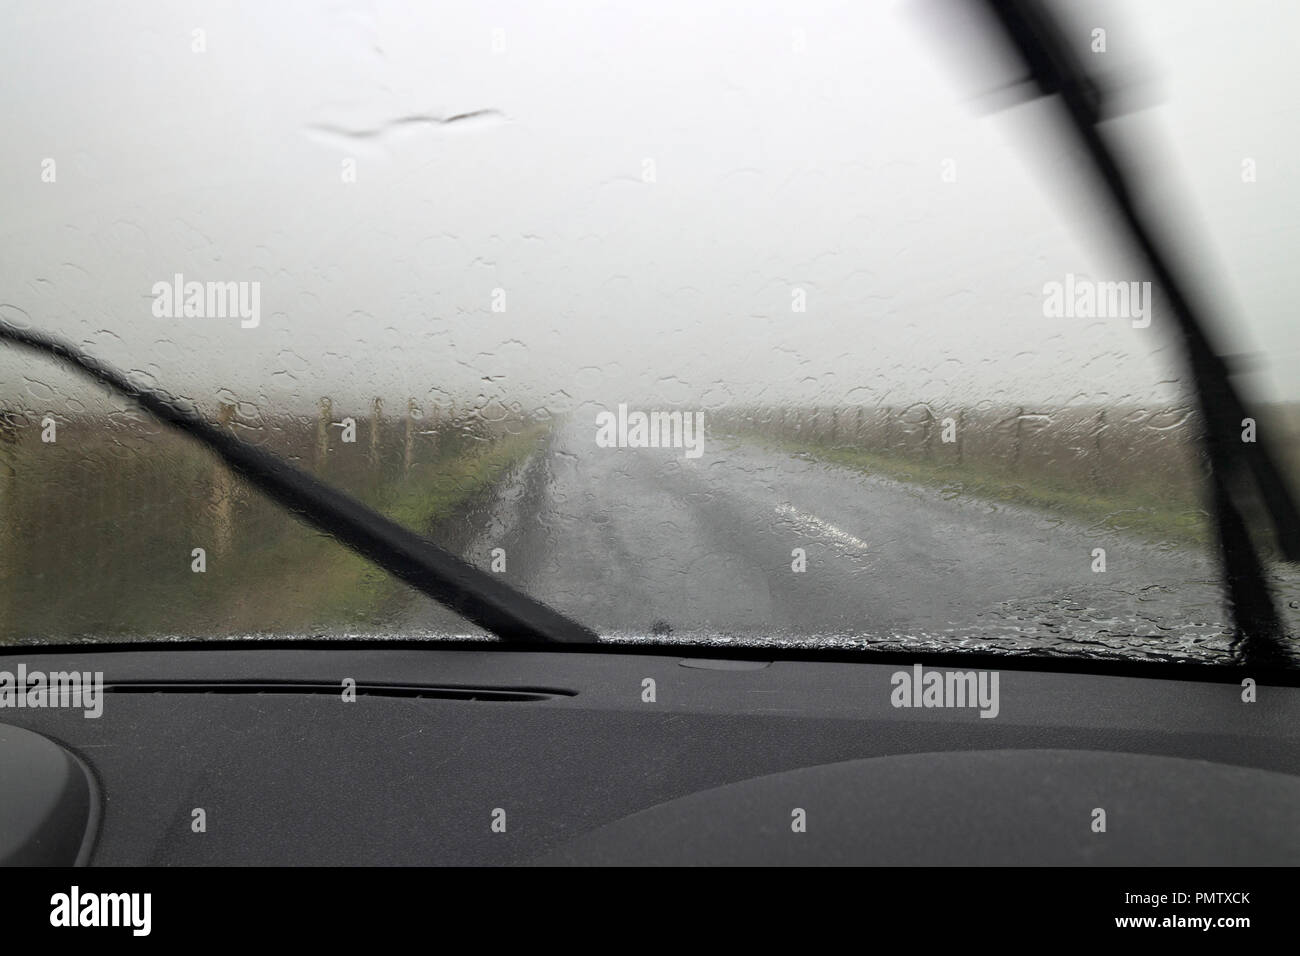 B6276, Brough, Cumbria, UK.  Wednesday 19th September 2018.  Strong winds and heavy rain associated with Storm Ali are making driving conditions hazardous in Cumbria.  Storm Ali is the first named storm of the winter and it has caused at least one death as it sweeps across Ireland and the UK. Credit: David Forster/Alamy Live News - Stock Image